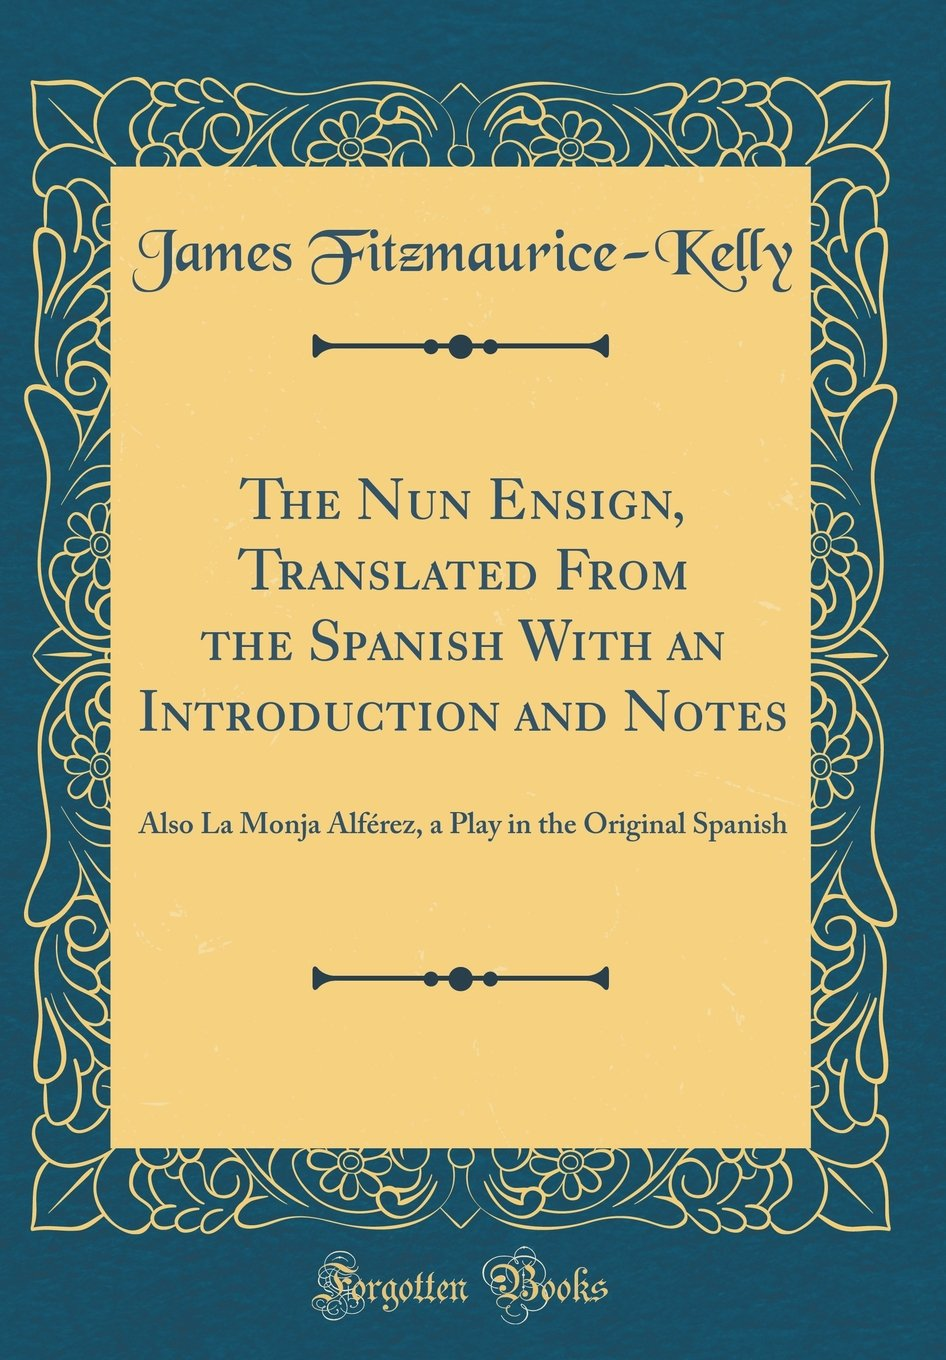 The Nun Ensign, Translated From the Spanish With an Introduction and Notes: Also La Monja Alférez, a Play in the Original Spanish (Classic Reprint) PDF